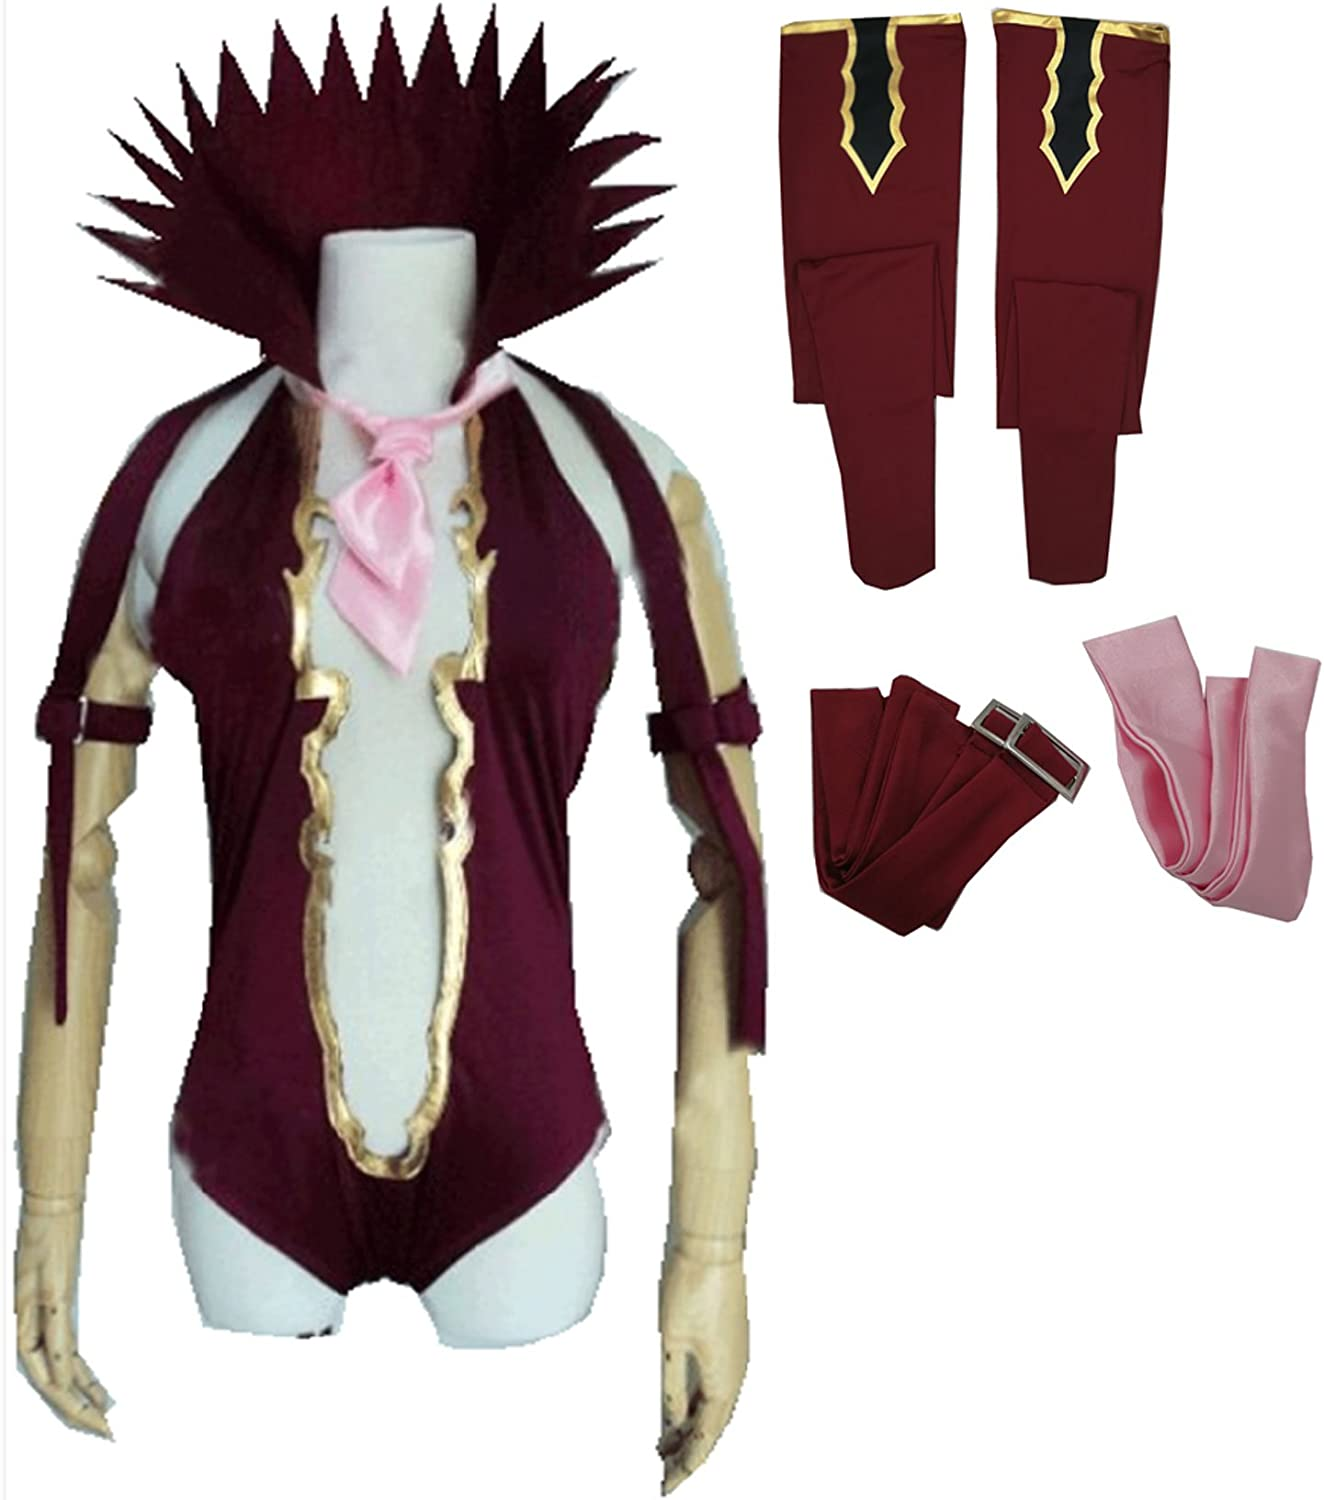 Amazon Com Vicwin One Mirajane Strauss Devil Cosplay Uniform Halloween Cosplay Costume Clothing Redbubble is trusted by millions of customers and 200,000+ independent creators. strauss devil cosplay uniform halloween